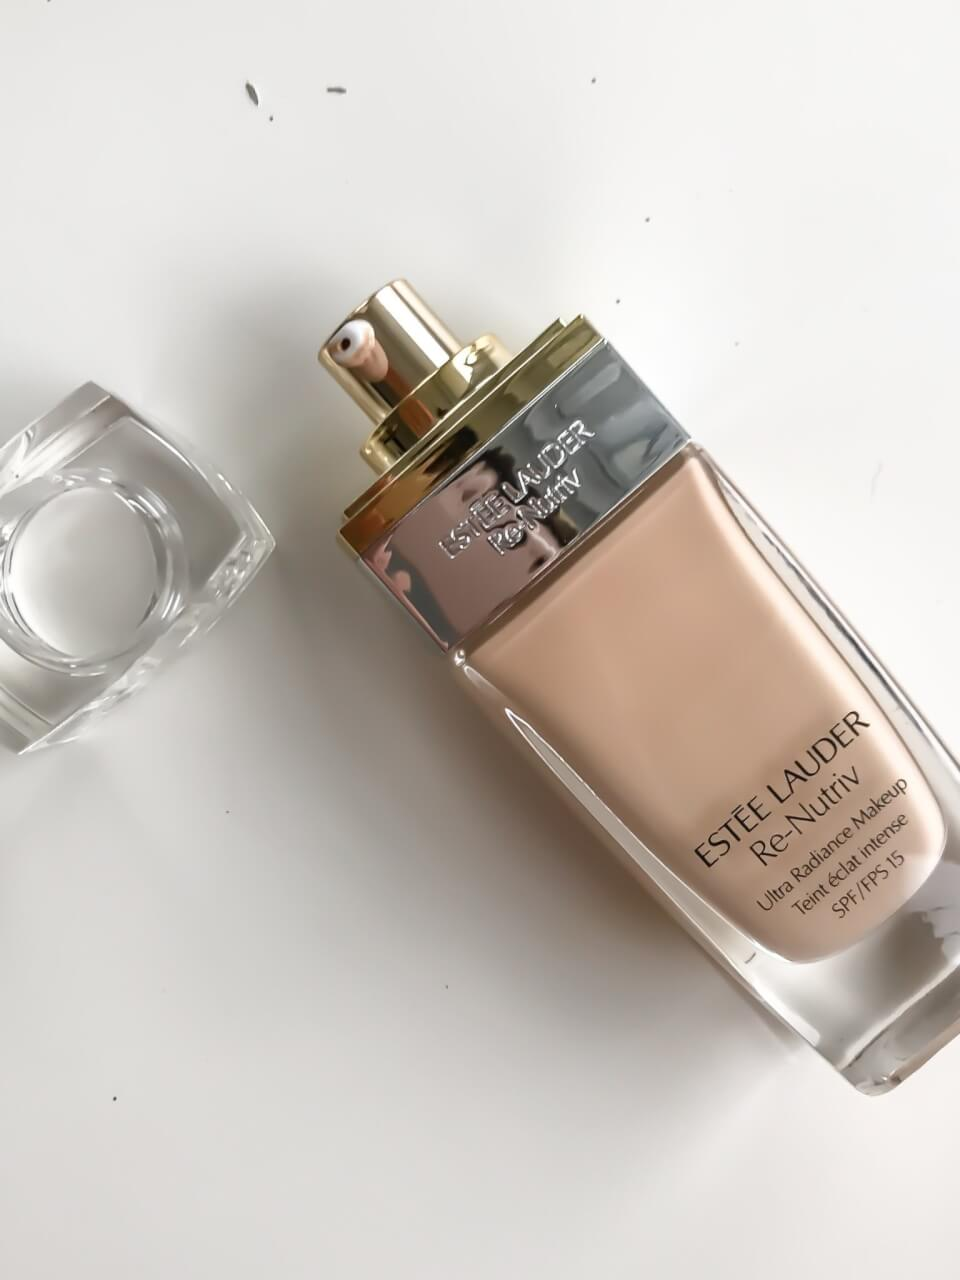 Podkład Estee Lauder Re-Nutriv Ultra Radiance Liquid Makeup 1N2 Ecru